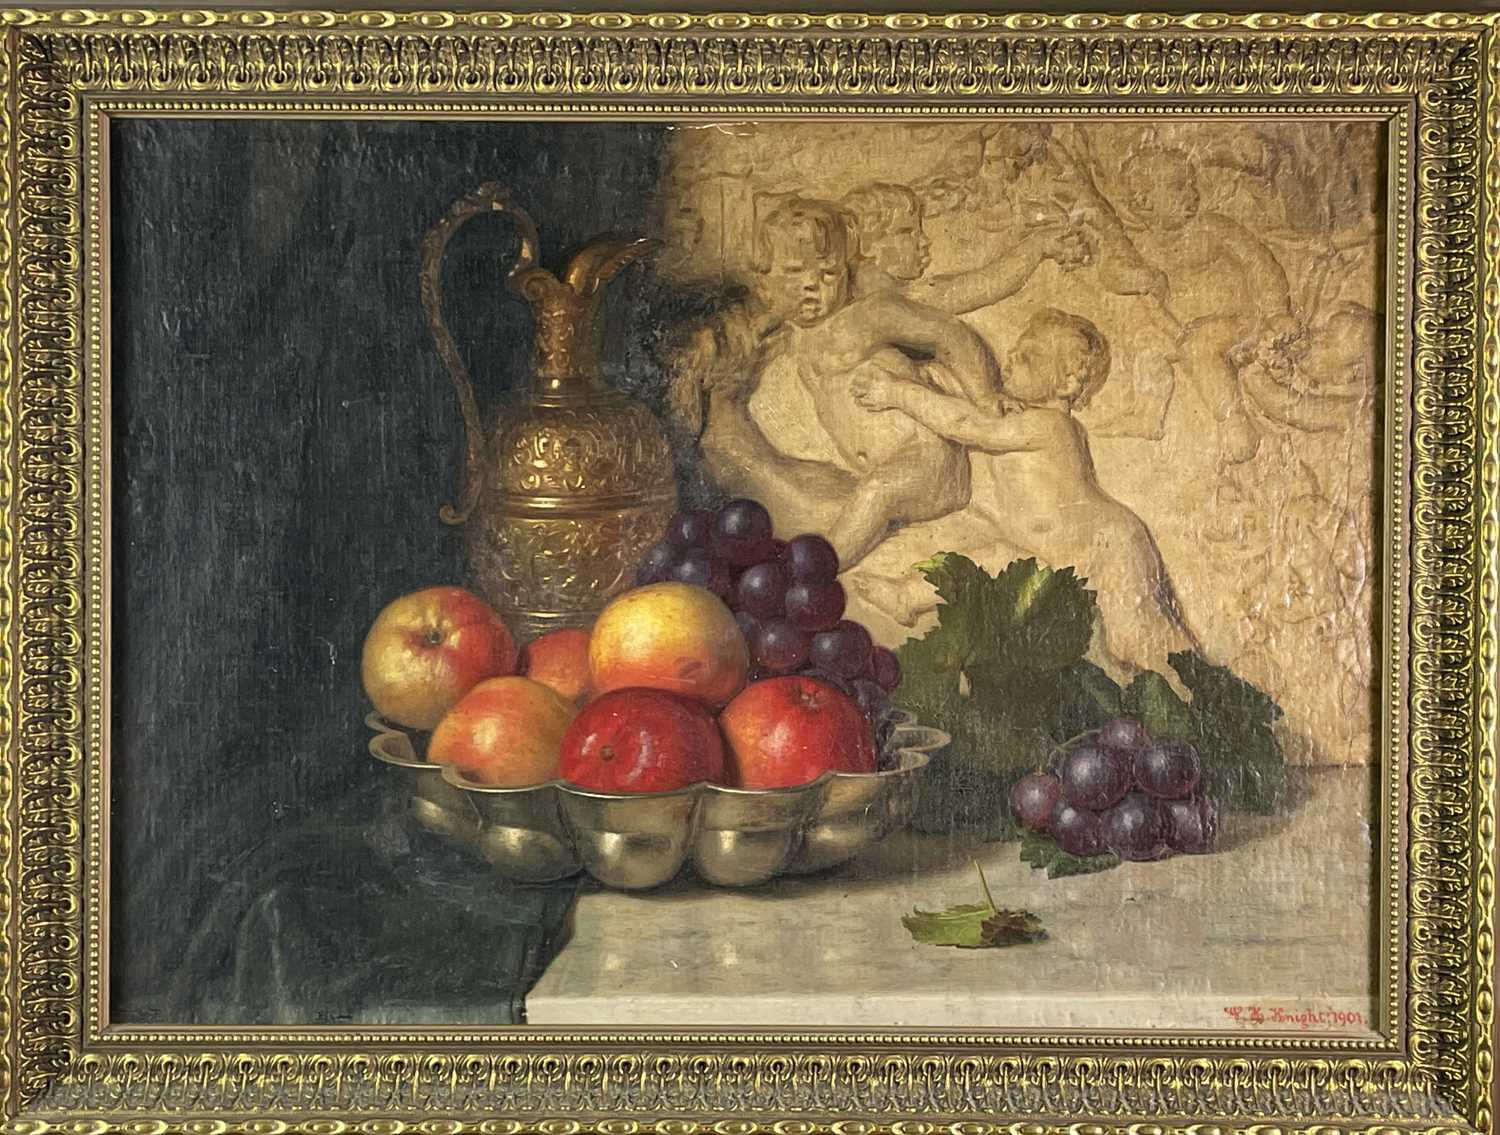 W. H. KNIGHT Still Life after Caravaggio Oil on canvas laid down Signed and dated 1901 - Image 3 of 3